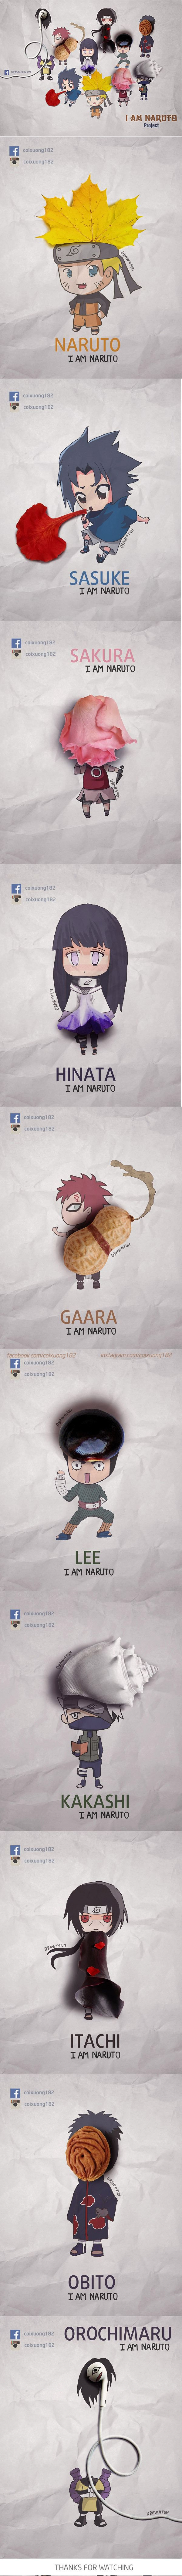 Amazing Naruto's Character by Nguyen Quang Huy - www.viralpx.com